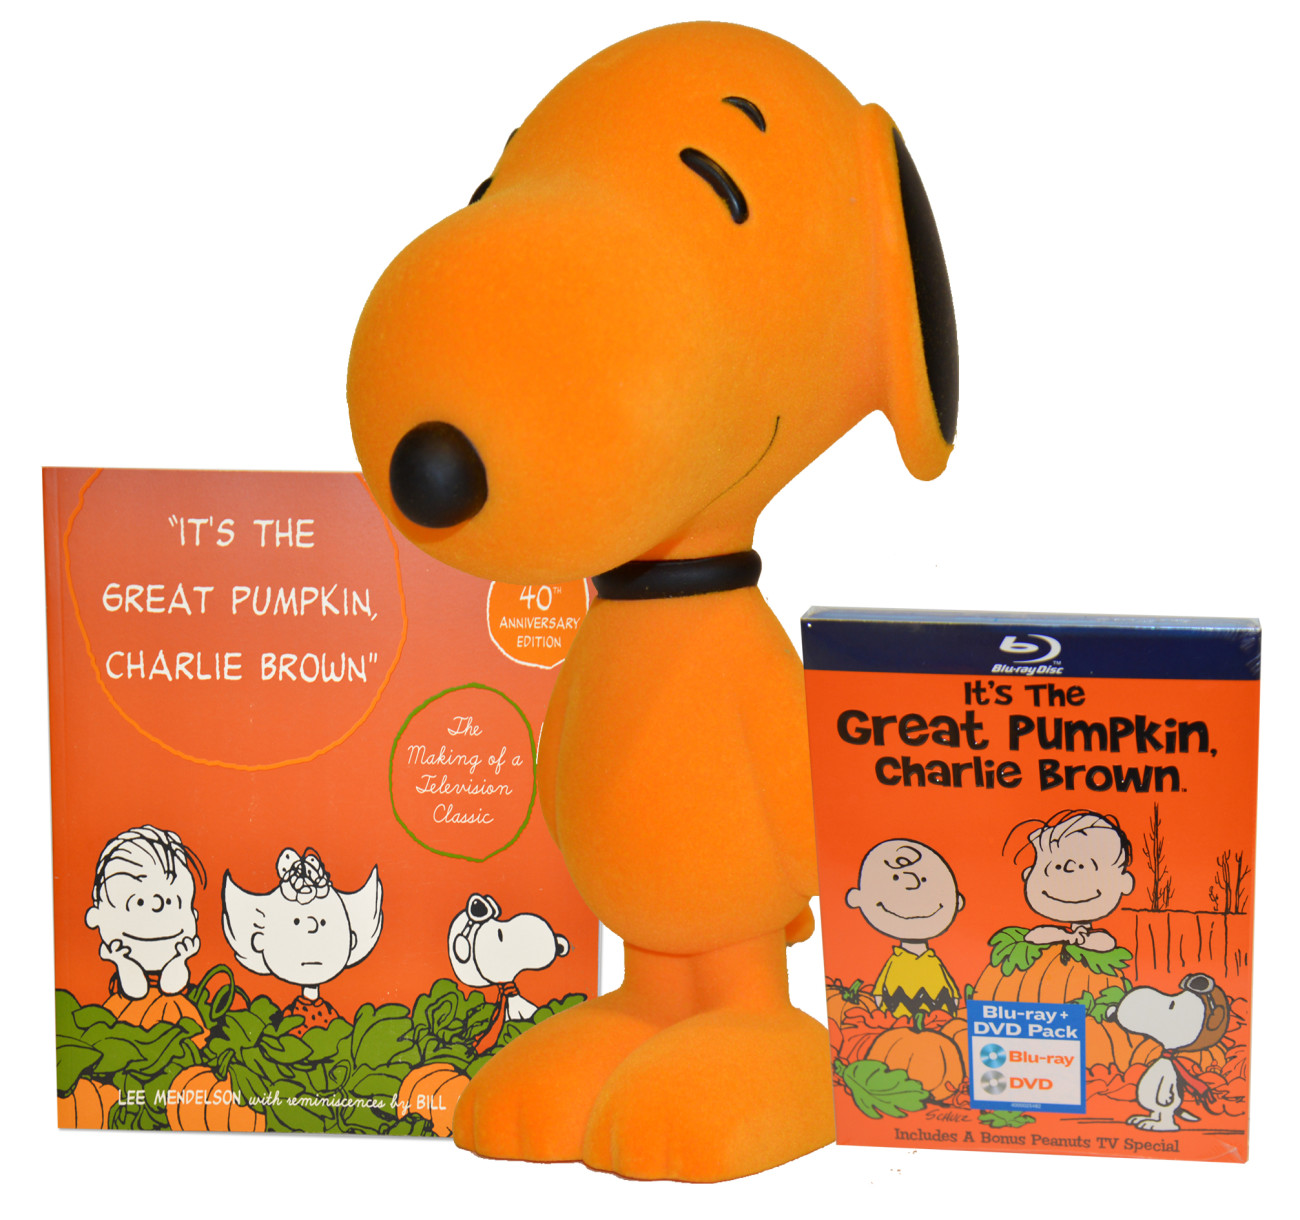 Celebrate Halloween and Win a Peanuts Prize Package